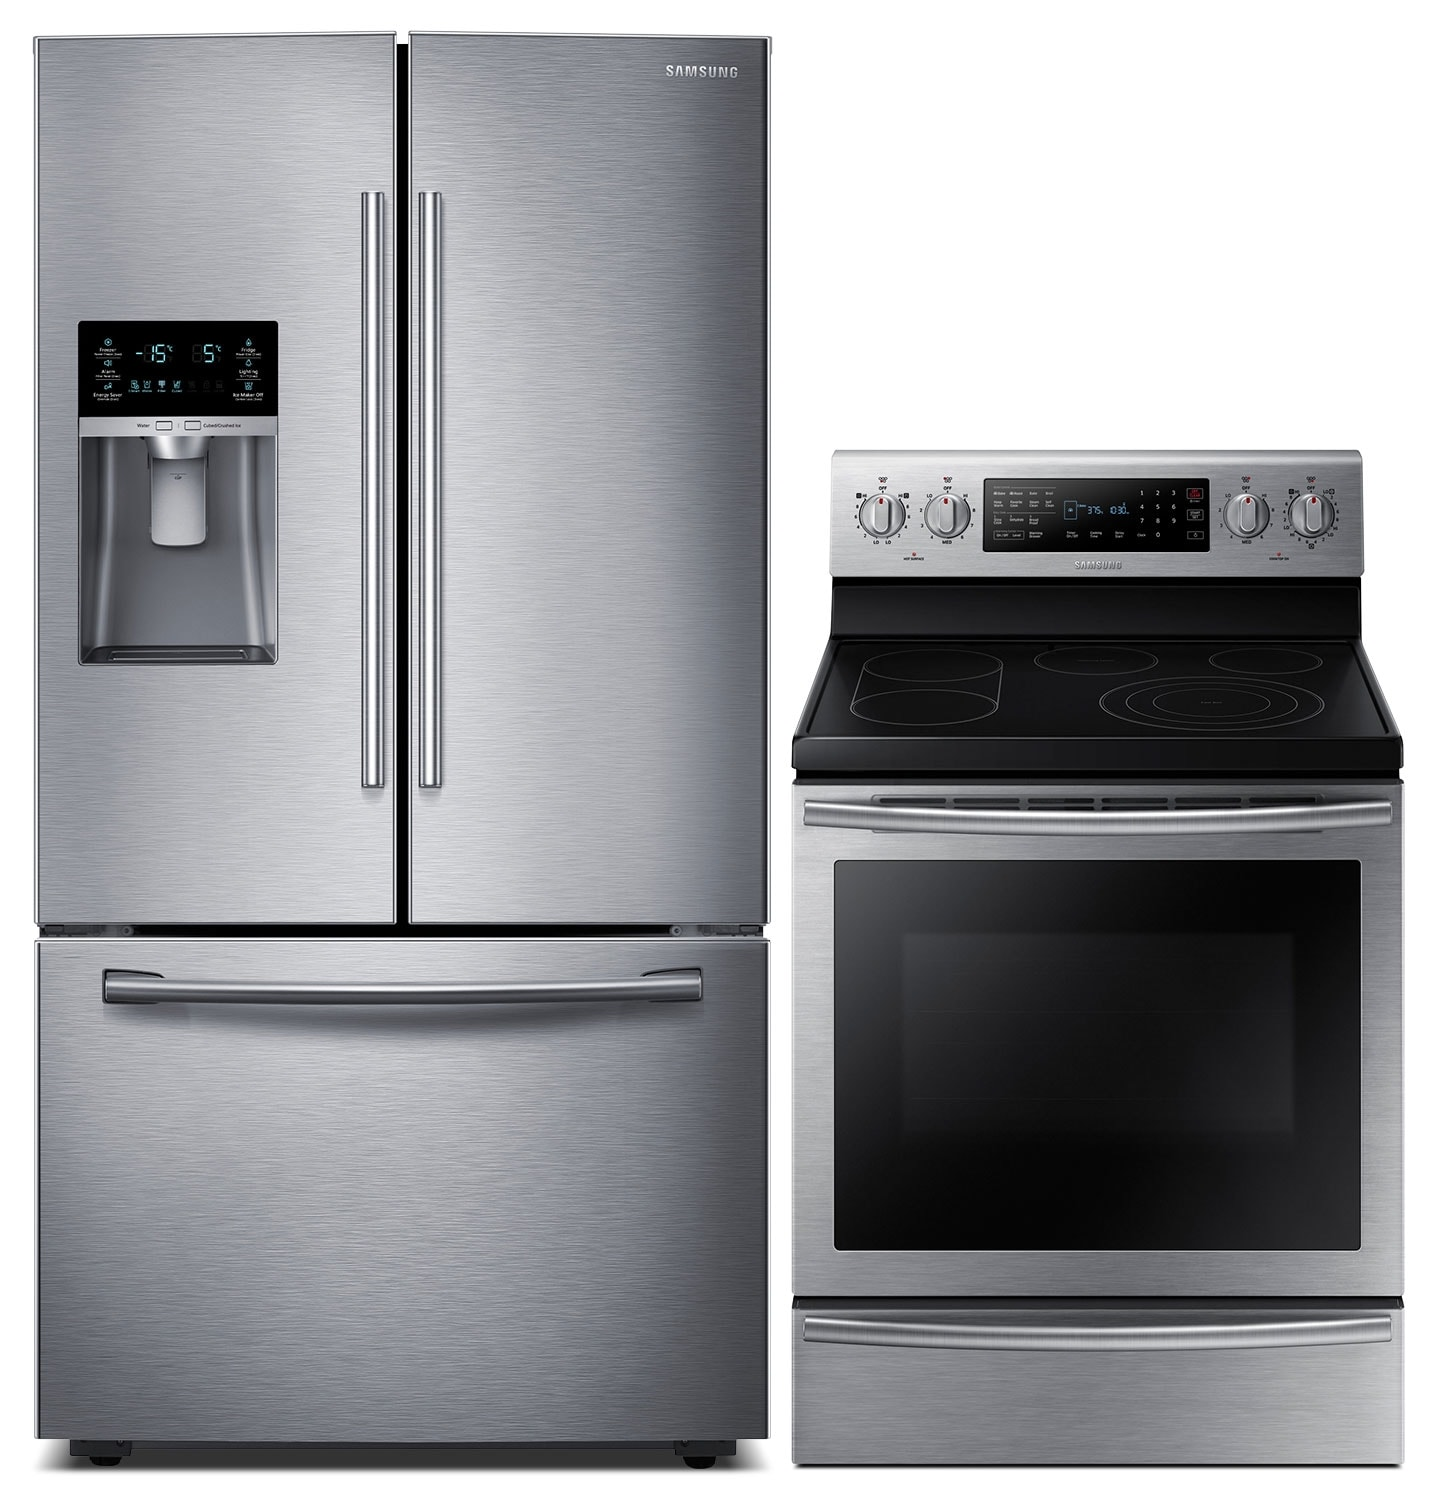 Samsung 28 Cu. Ft. Refrigerator and 5.9 Cu. Ft. Range - Stainless Steel